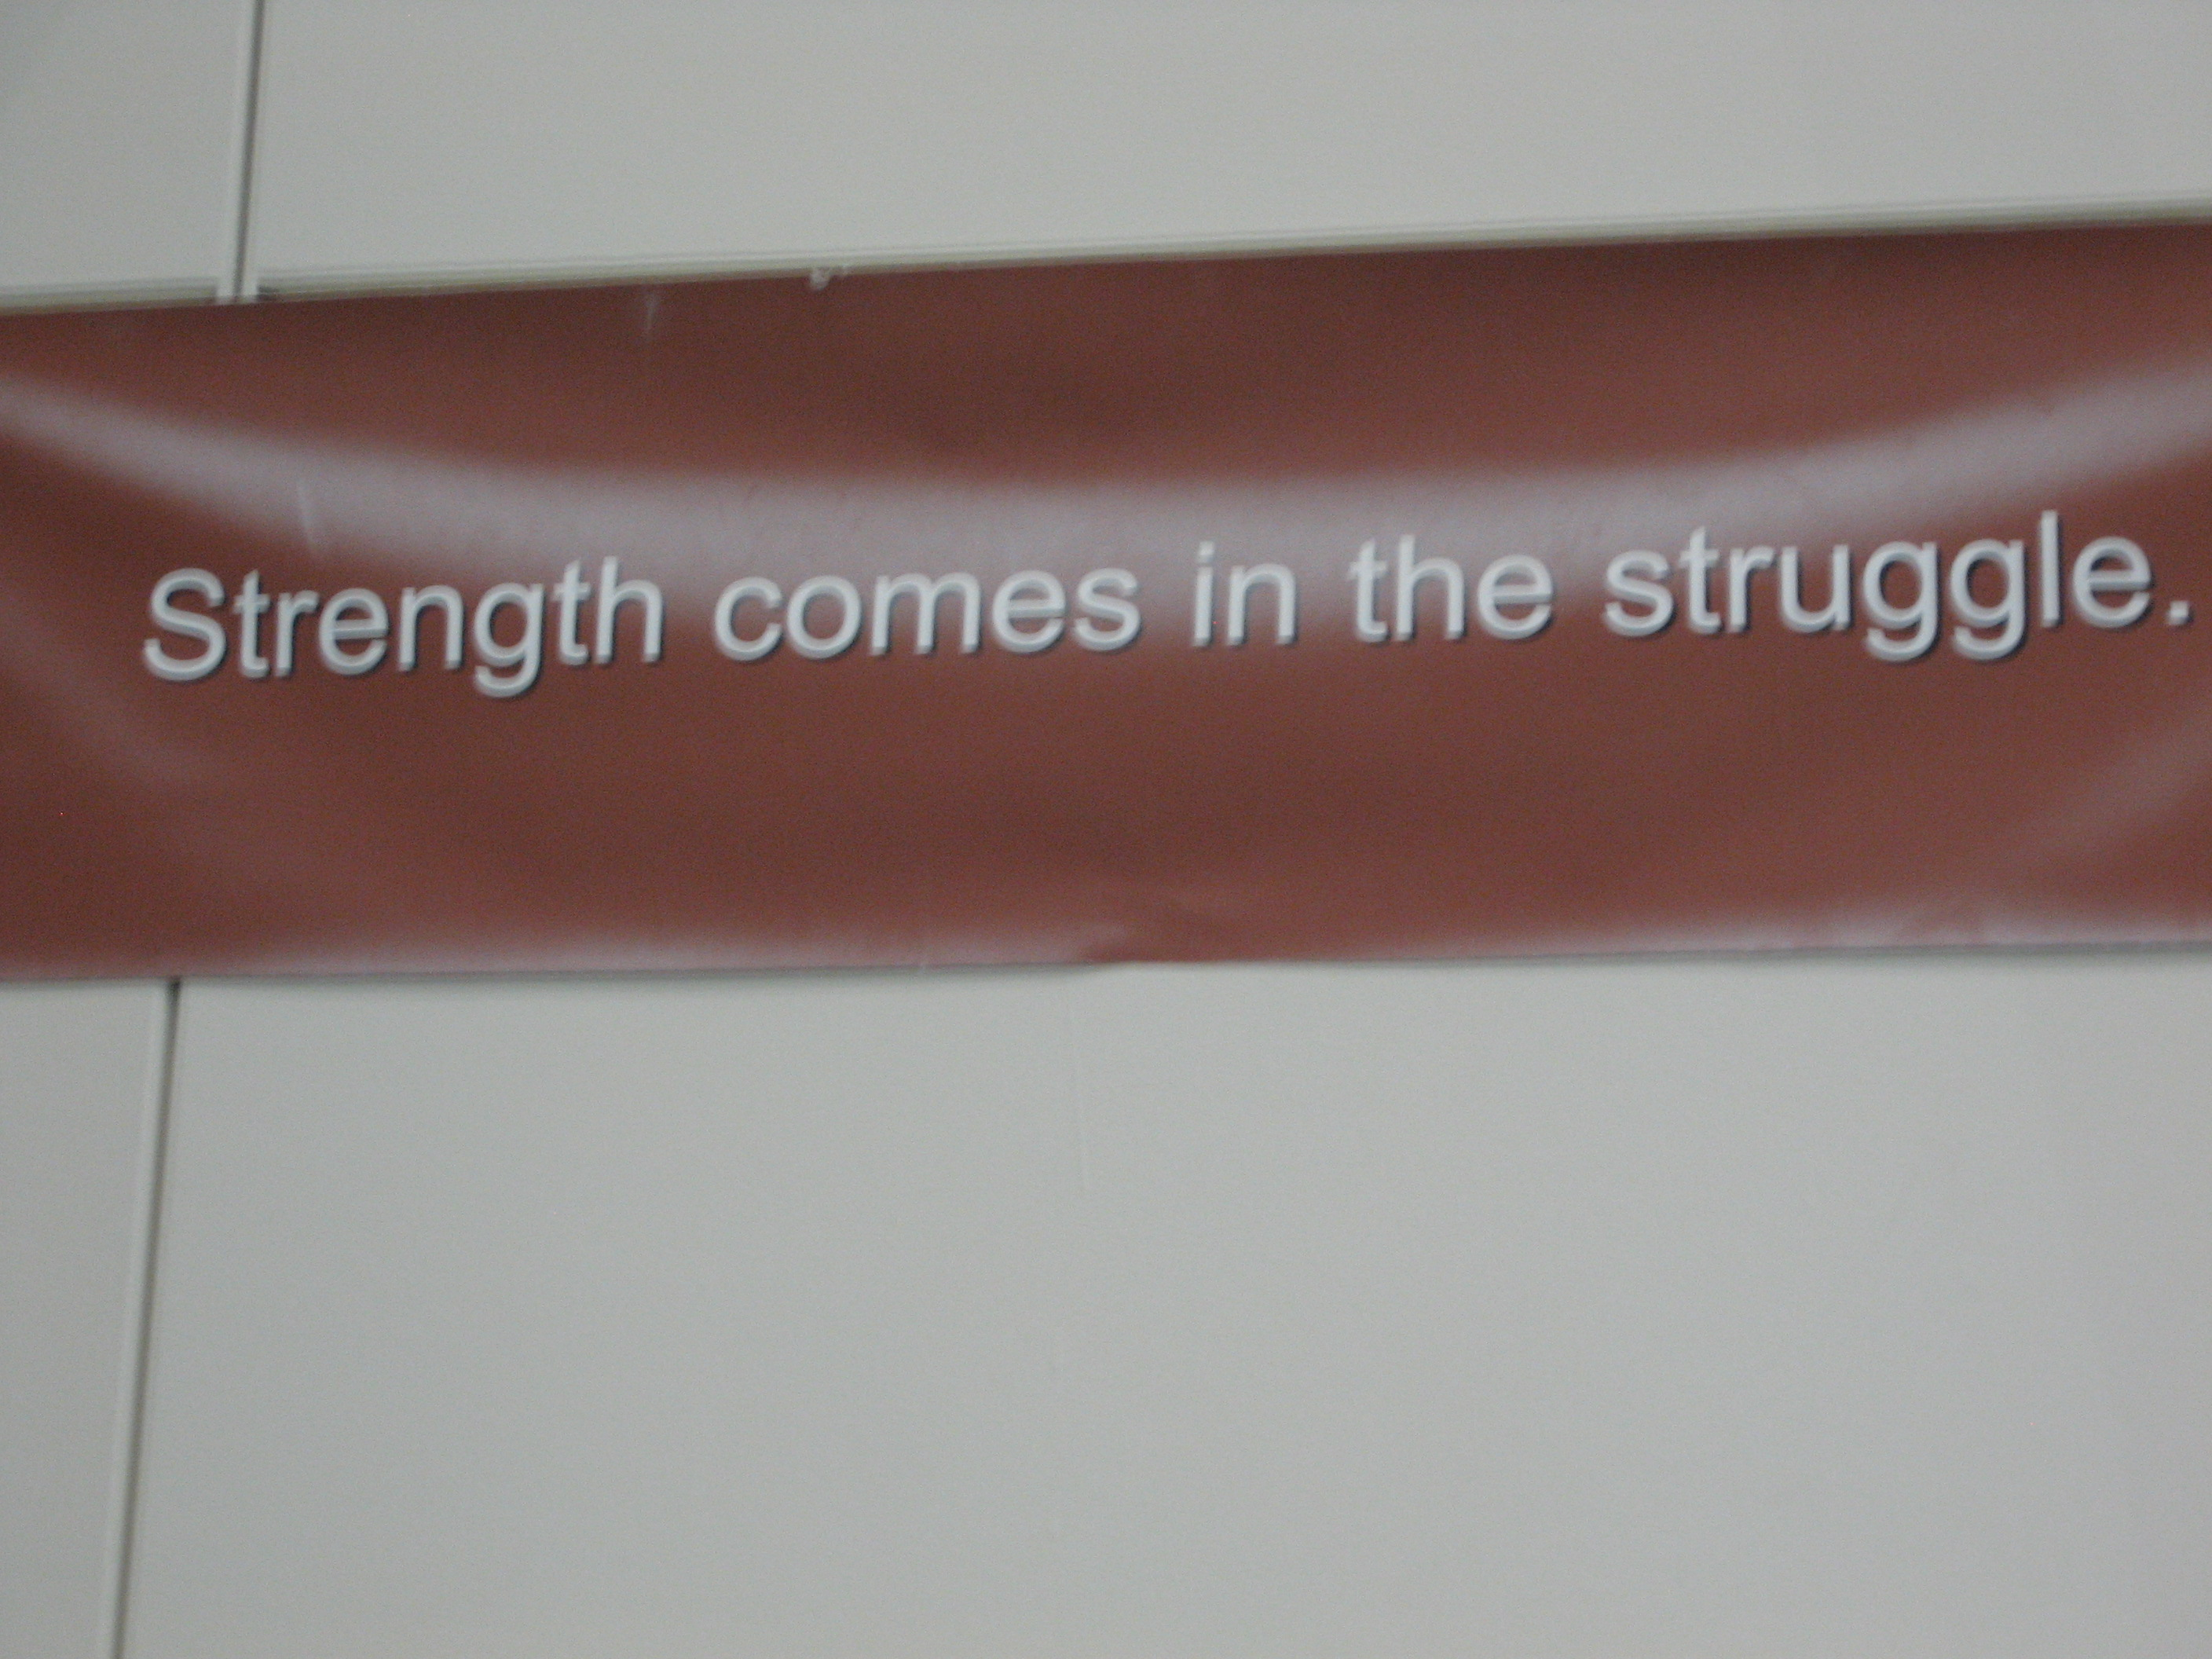 strength comes in the struggle!